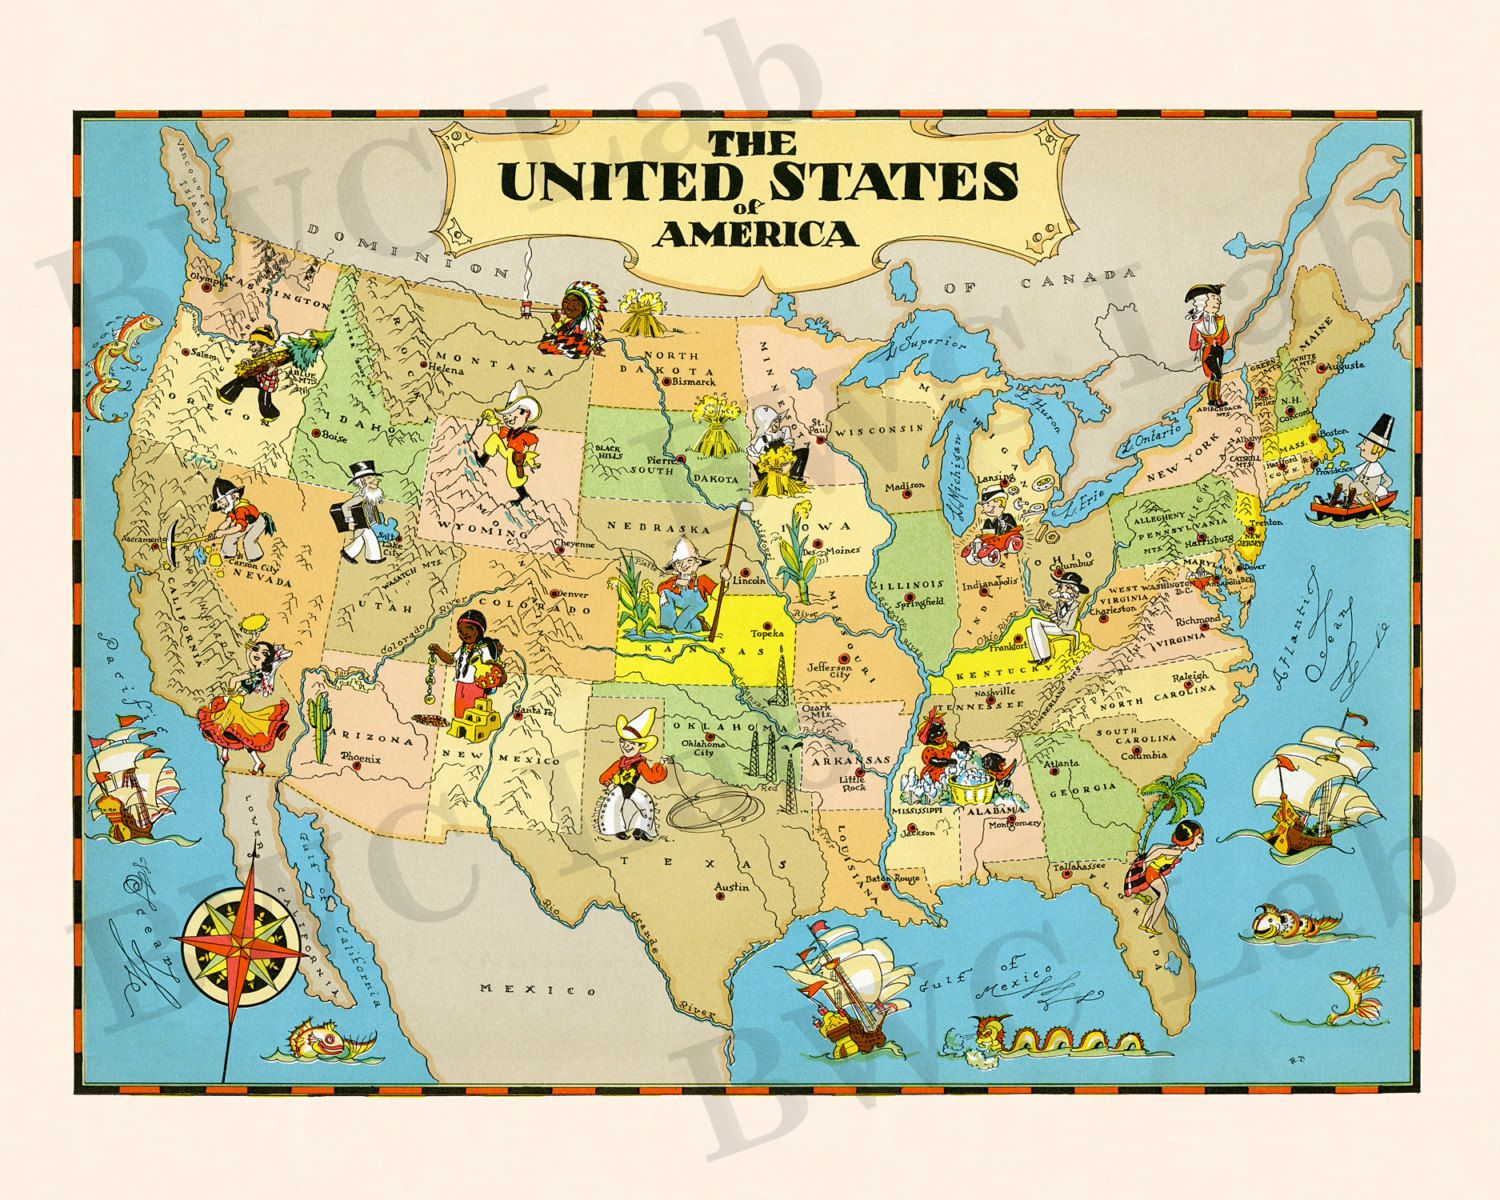 Vintage pictorial map of United States by Ruth Taylor Pictoral